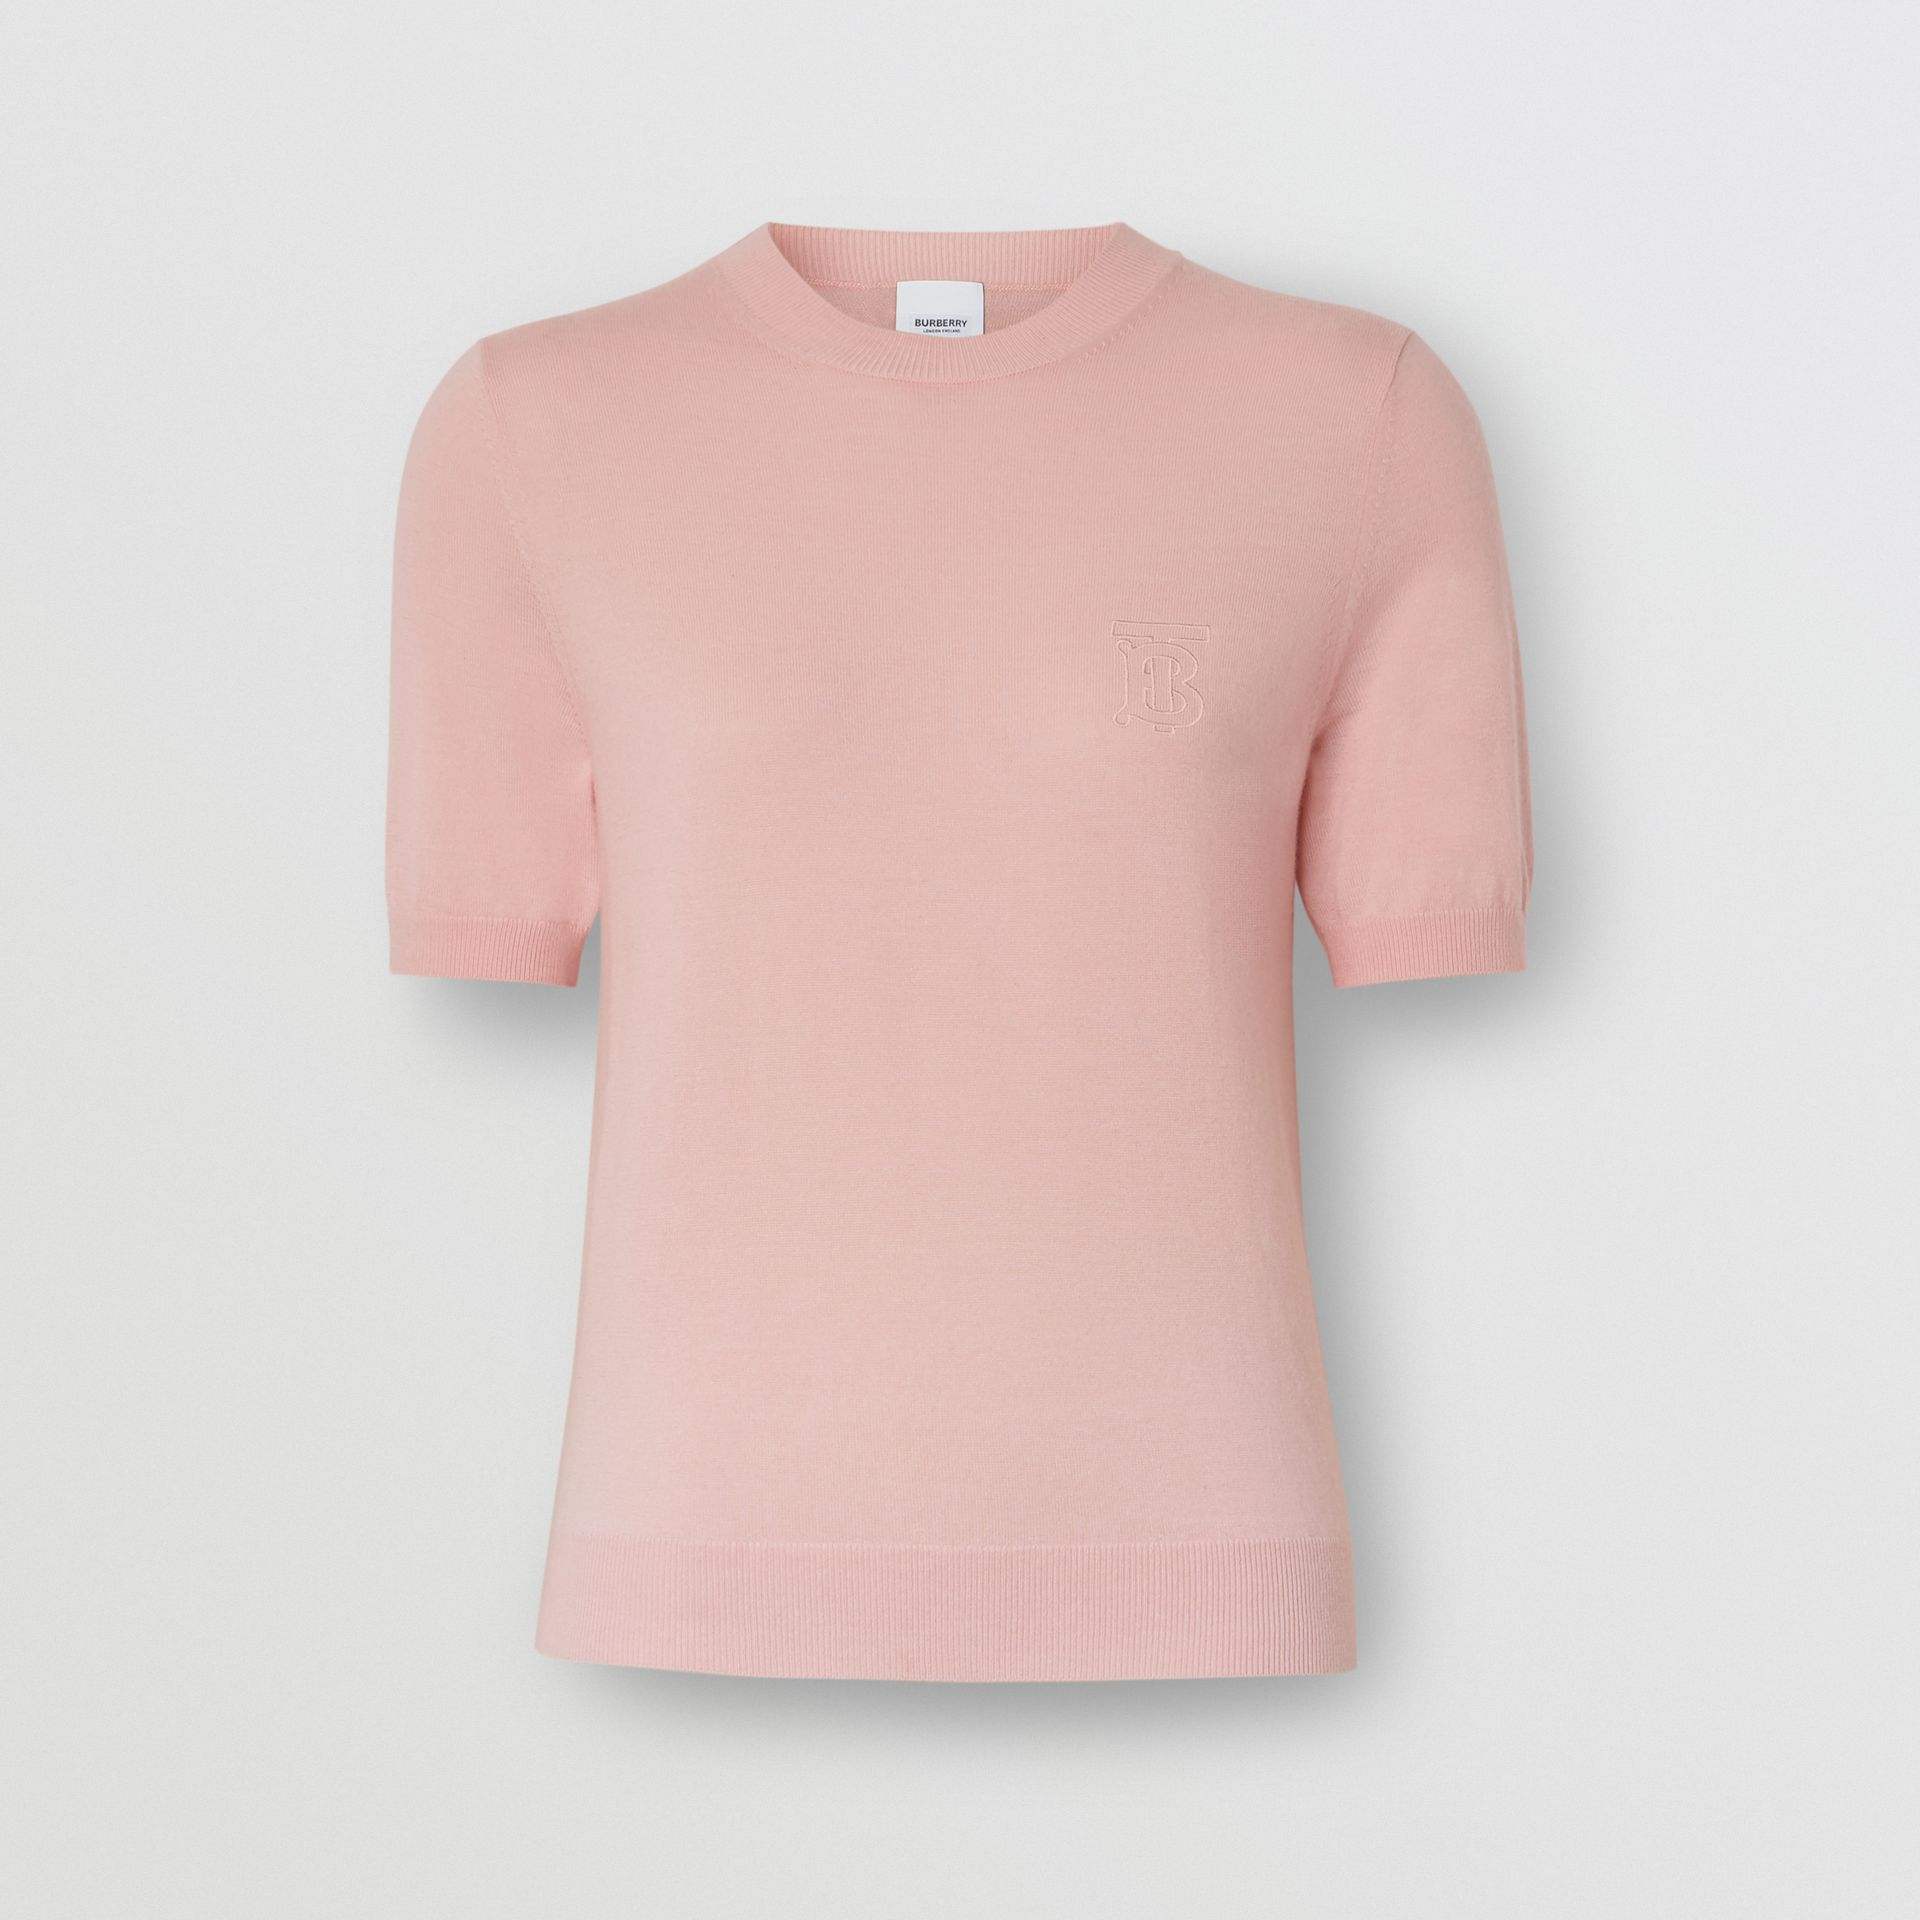 Monogram Motif Cashmere Top in Pink - Women | Burberry - gallery image 3